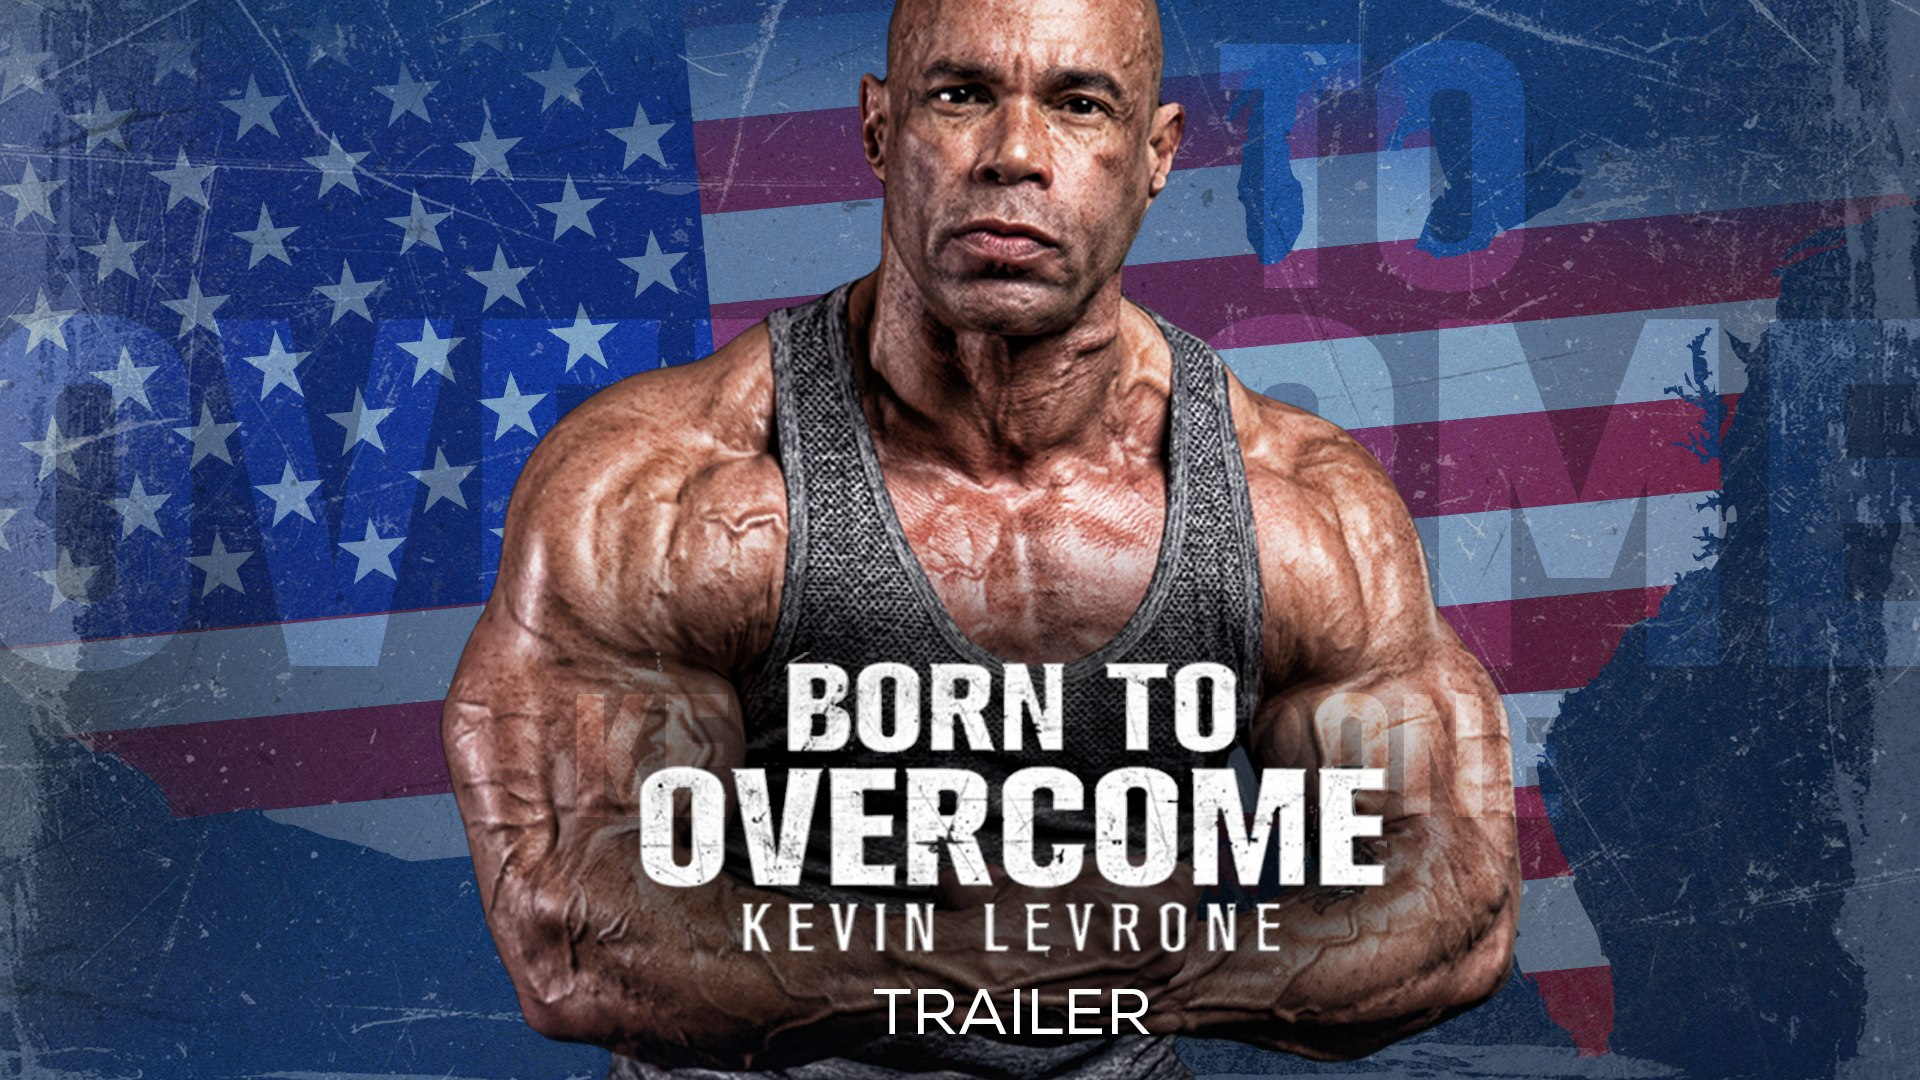 Born To Overcome Kevin Levrone Official Trailer Hd Bodybuilding Movie Video Dailymotion